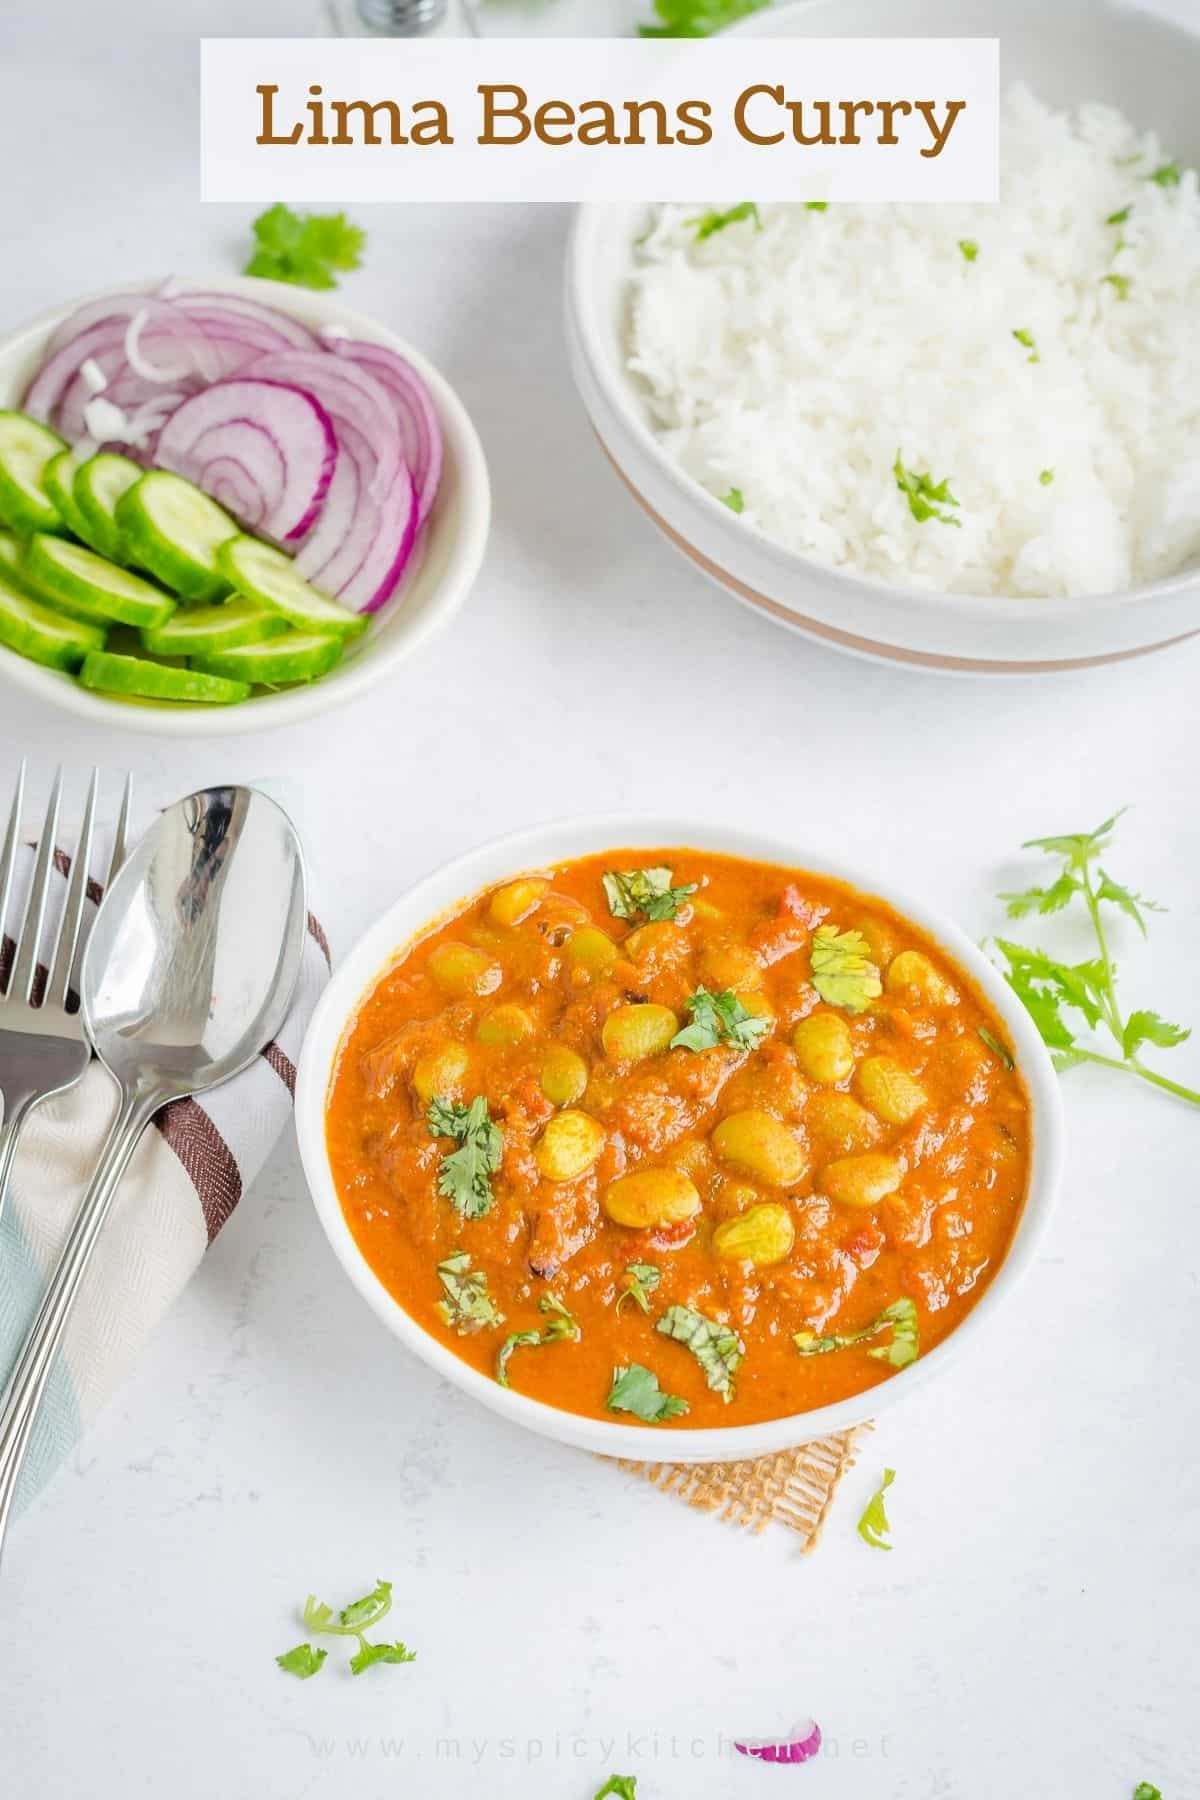 A bowl of gluten free, vegan curry and bowls of rice and salad on the side.